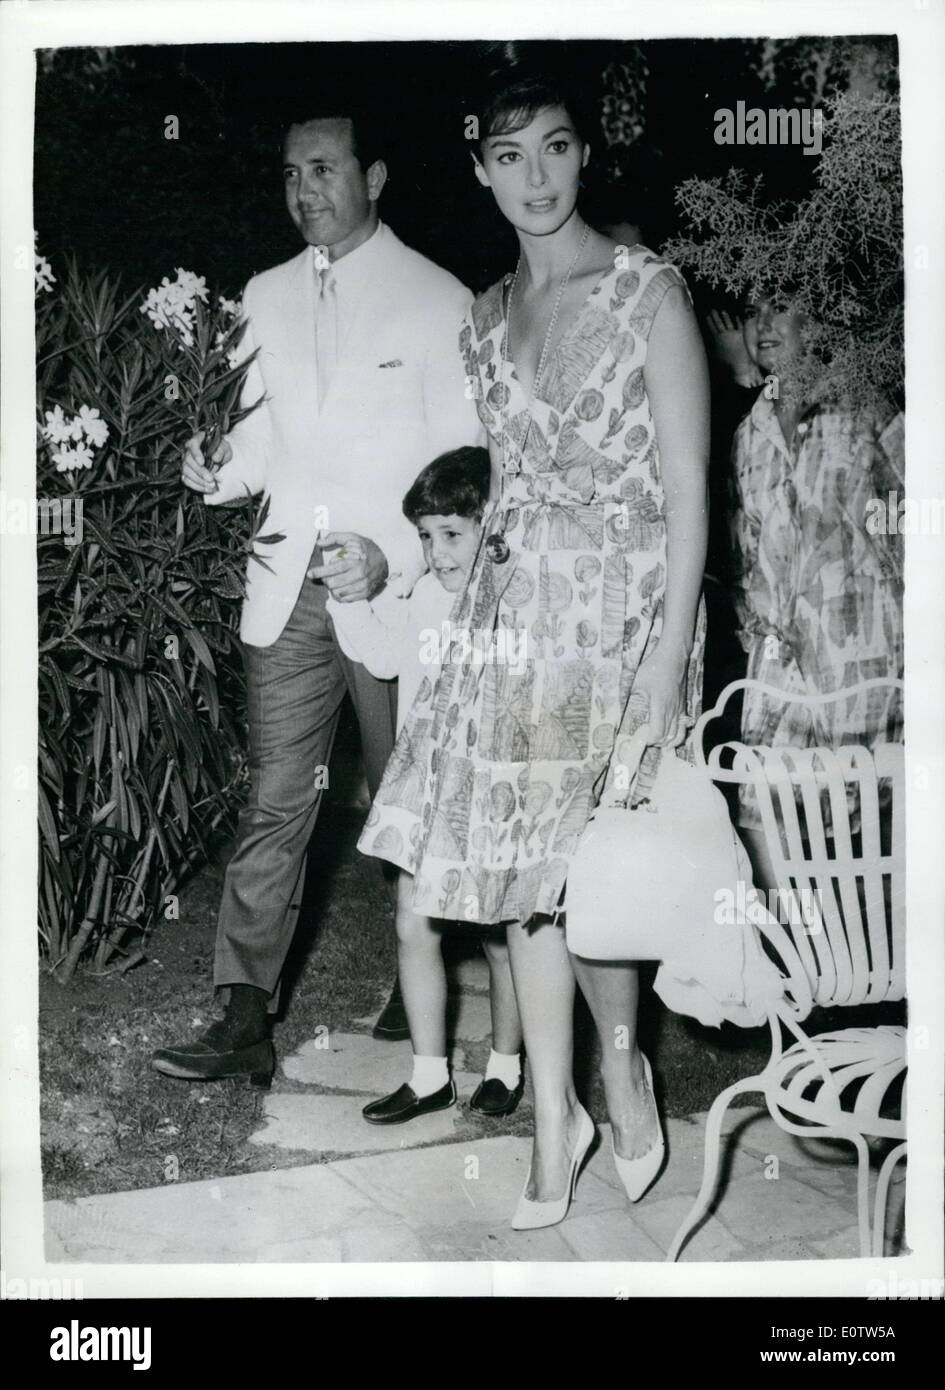 Aug. 07, 1960 - 7-8-60 Vic Damone and Pier Angeli together once again. Reconciliation in the offing?. Anna Maria Pier Angeli and her ex-husband Vic Damone were to be seen together at a Rome Hotel yesterday with their four year old son Perry. Anna had booked a suite at the hotel for Vic, who arrived from United States to take part in a new M.G.M. film. Friends of the couple believe that the chief reason for his visit to Rome was for the purpose of a reconciliation with his lovely wife and their son - Stock Image